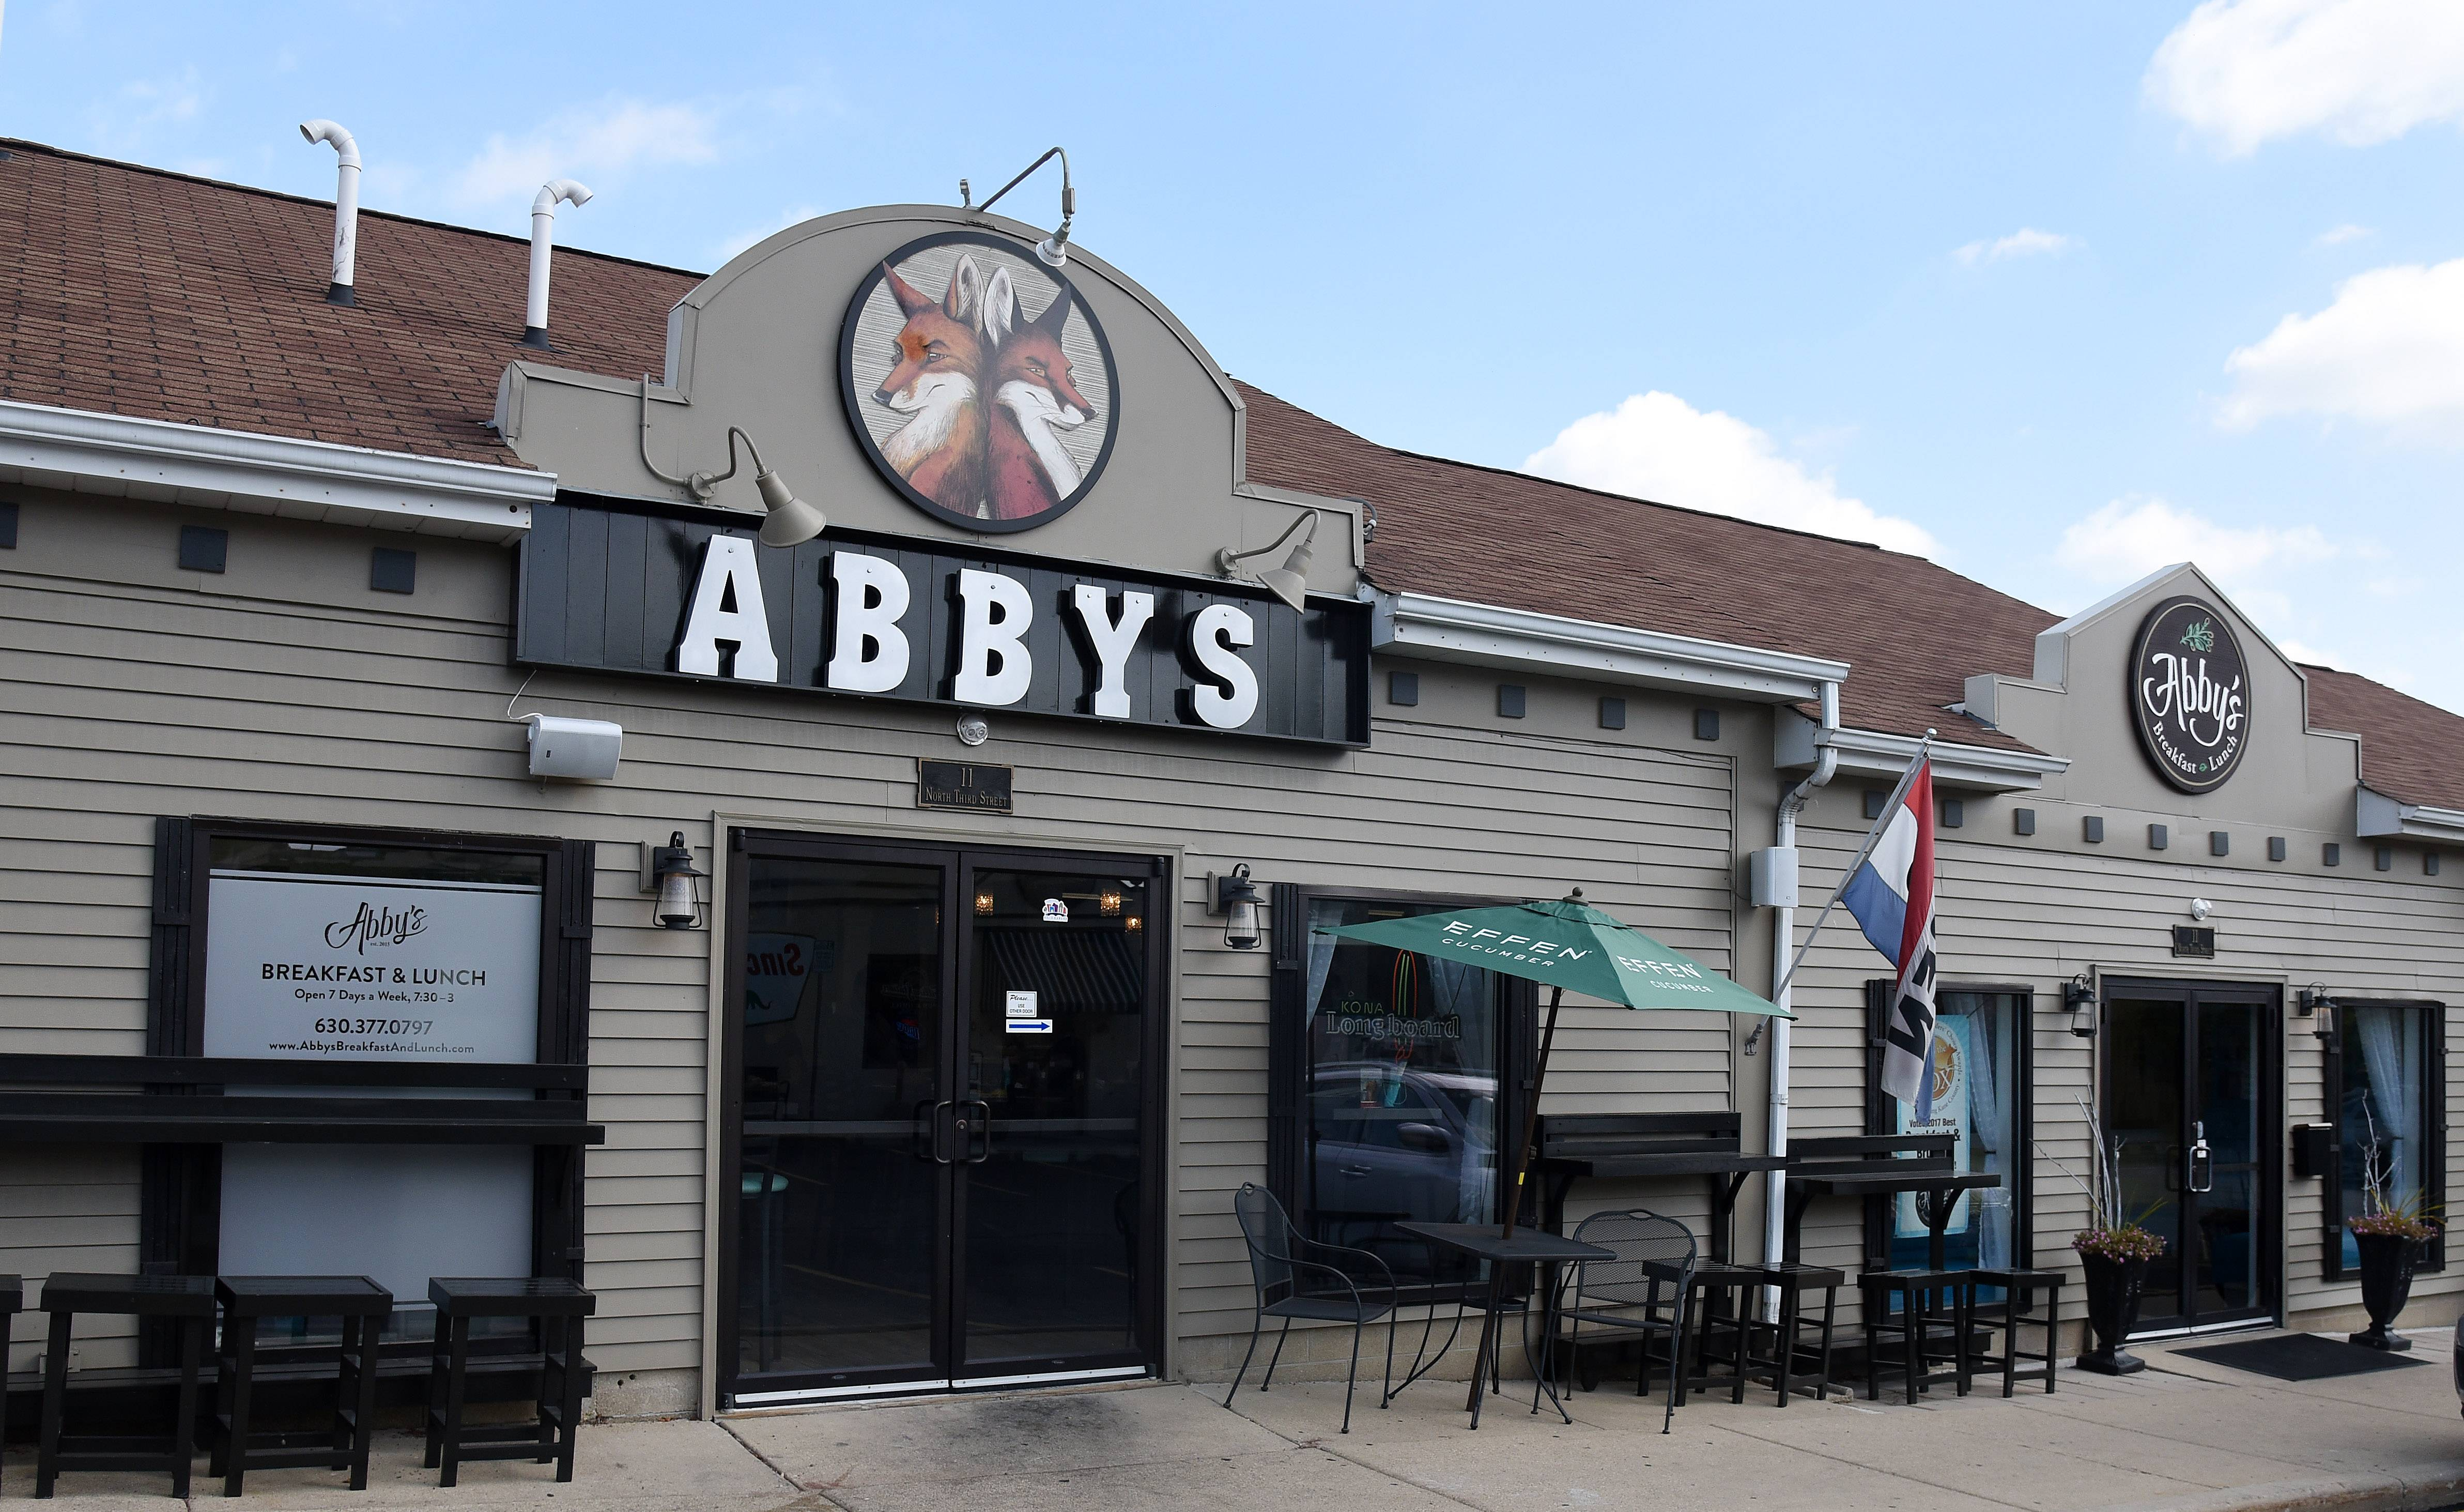 Abby's Breakfast and Lunch at 11 N. Third St., St. Charles, soon will be transformed into The Grandstander, a sports bar and smokehouse.